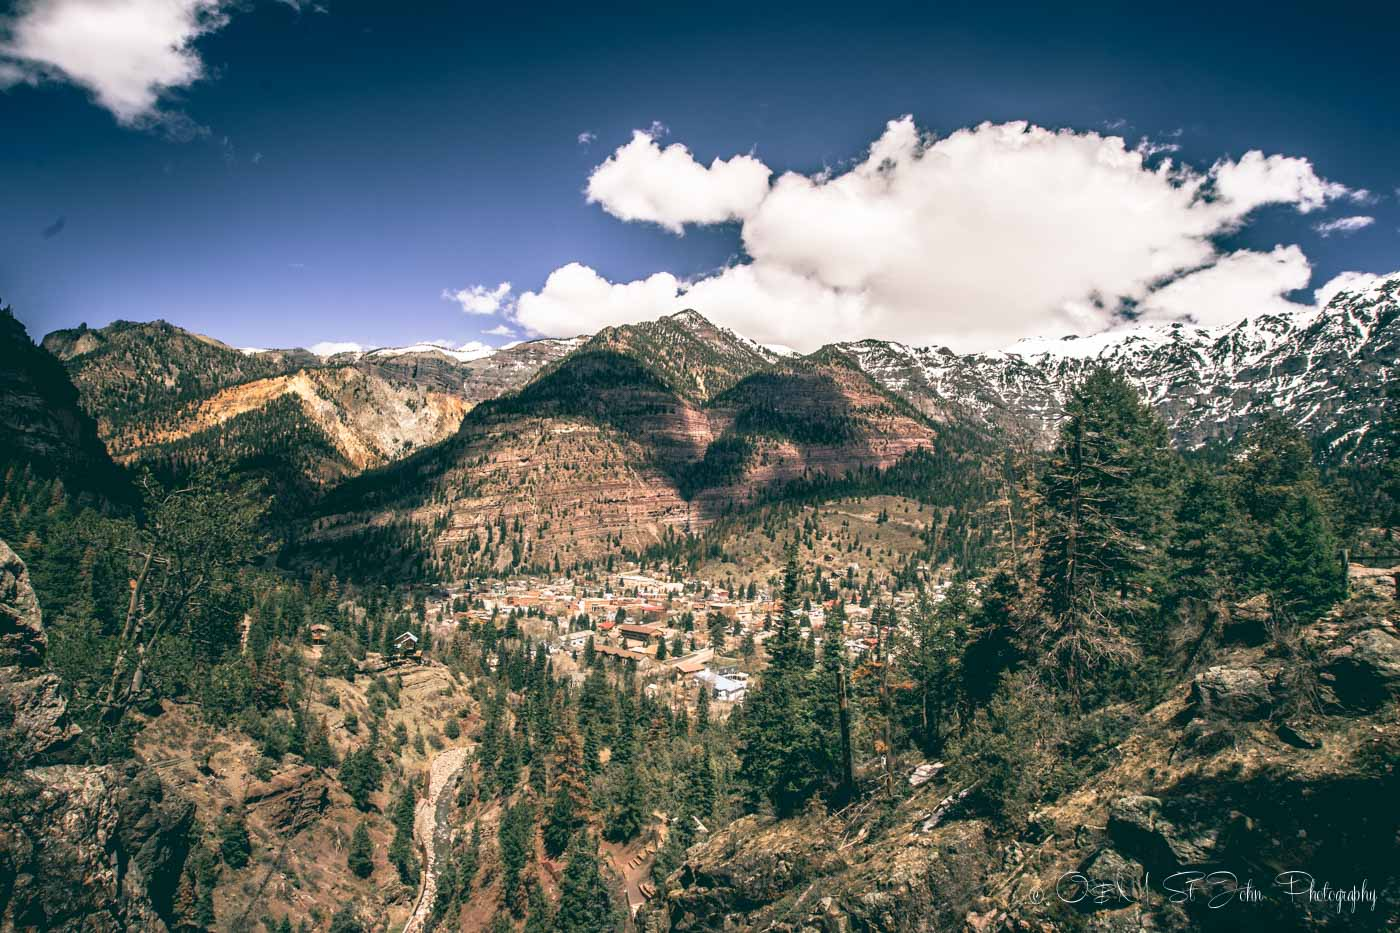 Colorado road trip: Ouray, view from above. Colorado. USA